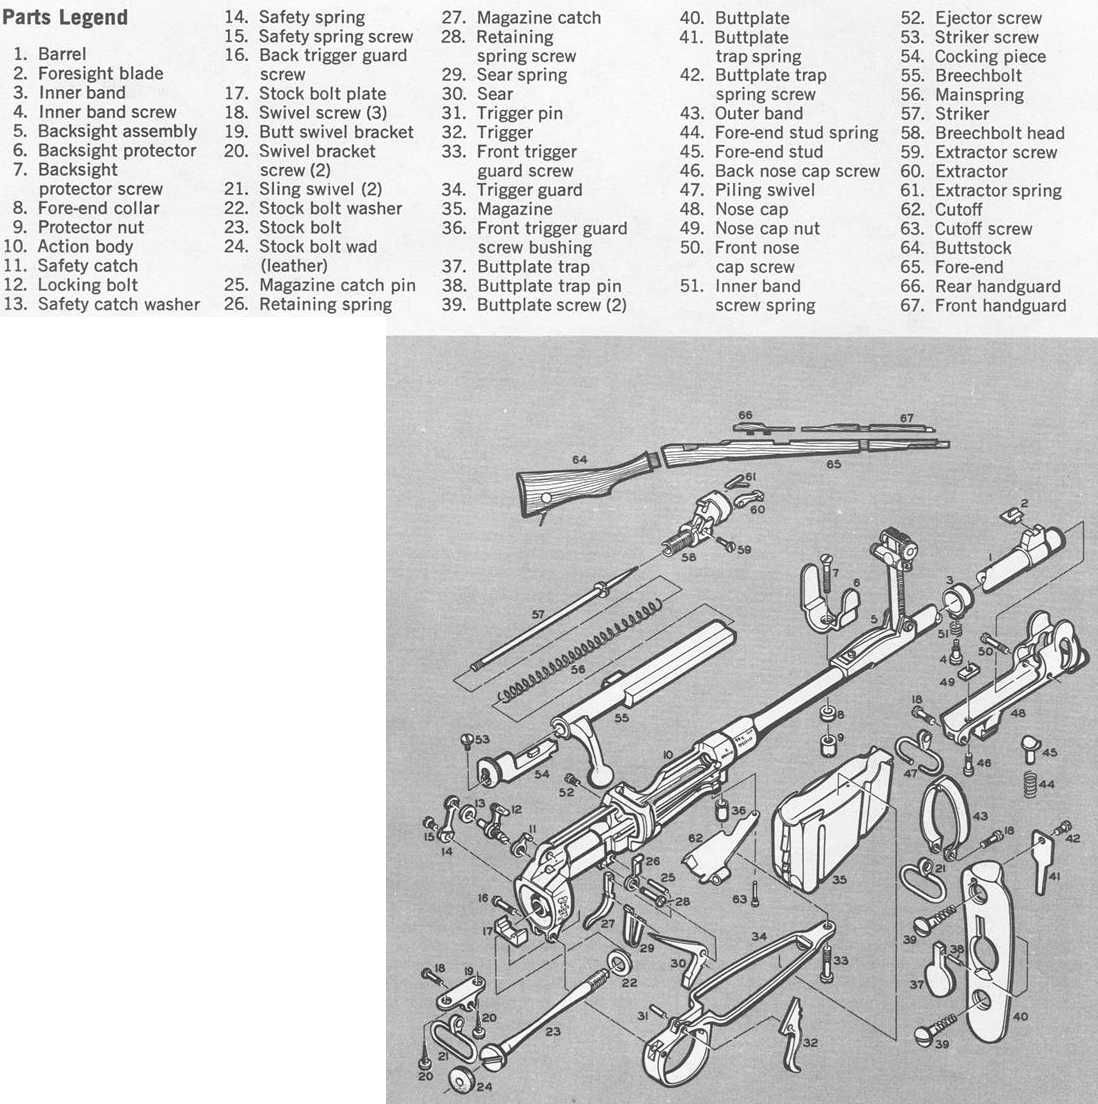 Lee enfield mk 1 parts